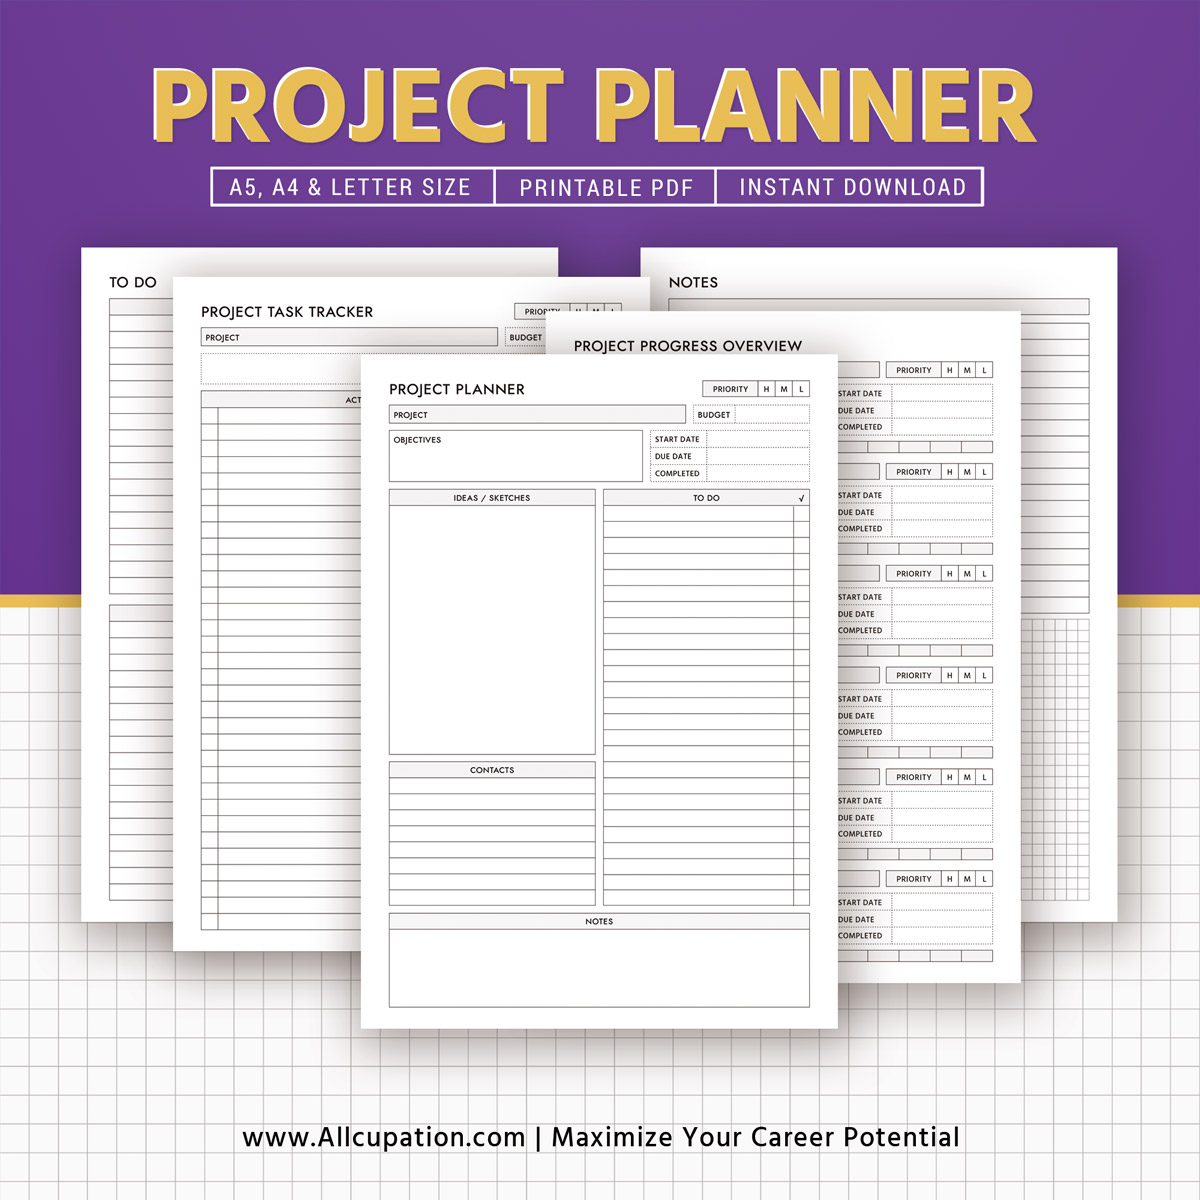 image regarding Printable Project Planner named 2019 Challenge Planner, Productiveness Planner, Get the job done Planner, Challenge Tracker, Printable Planner, Planner Layout, Excellent Planner, A5, A4, Letter, Quick